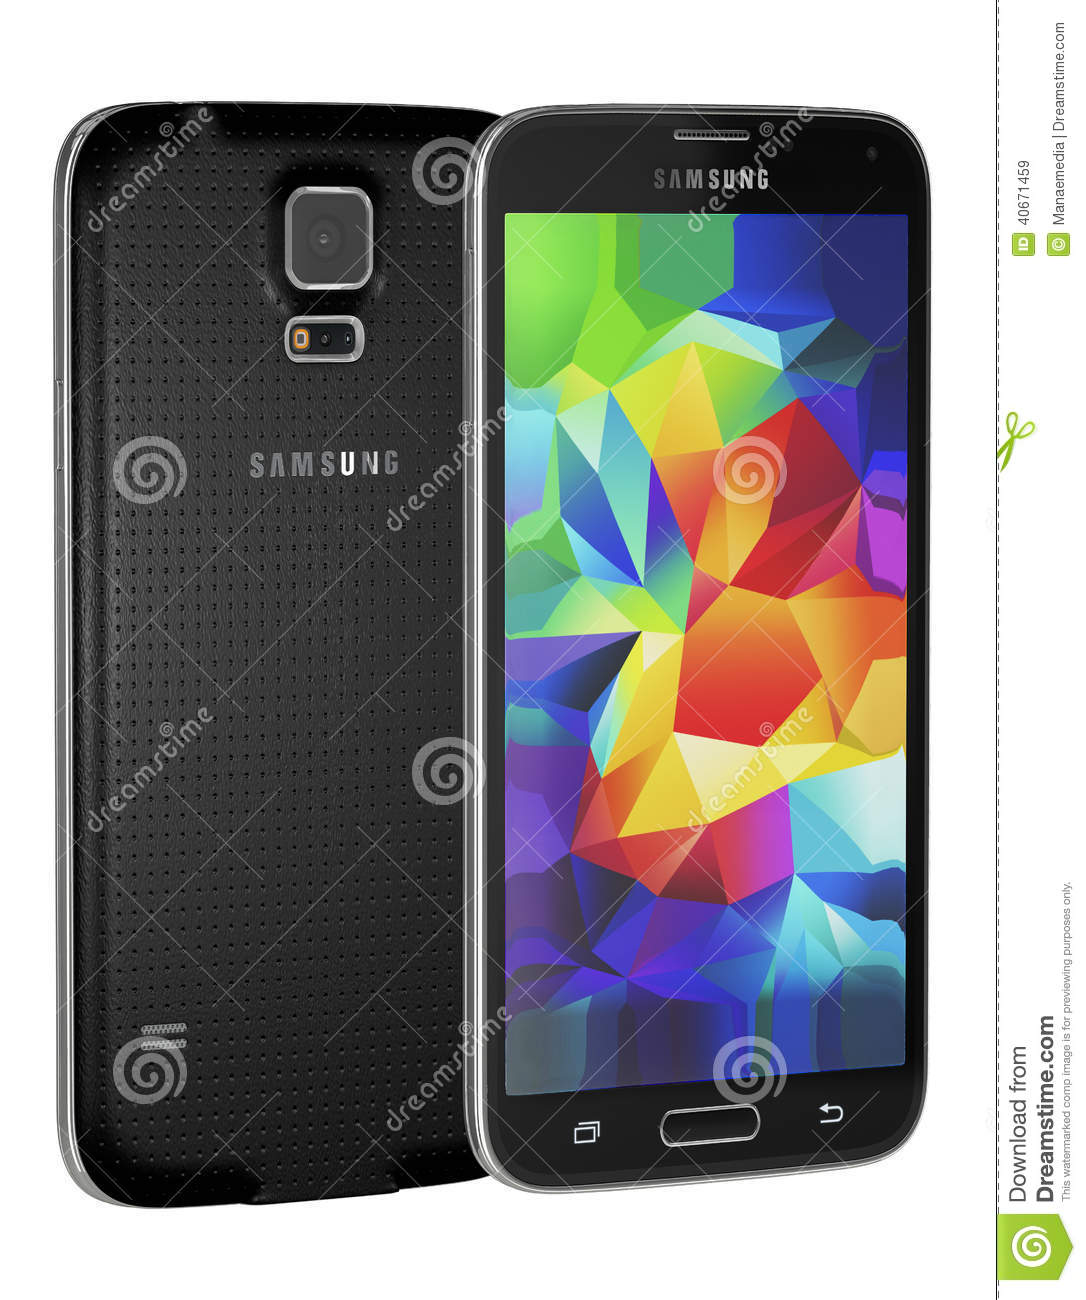 Samsung Galaxy S5 editorial stock image  Image of people - 40671459